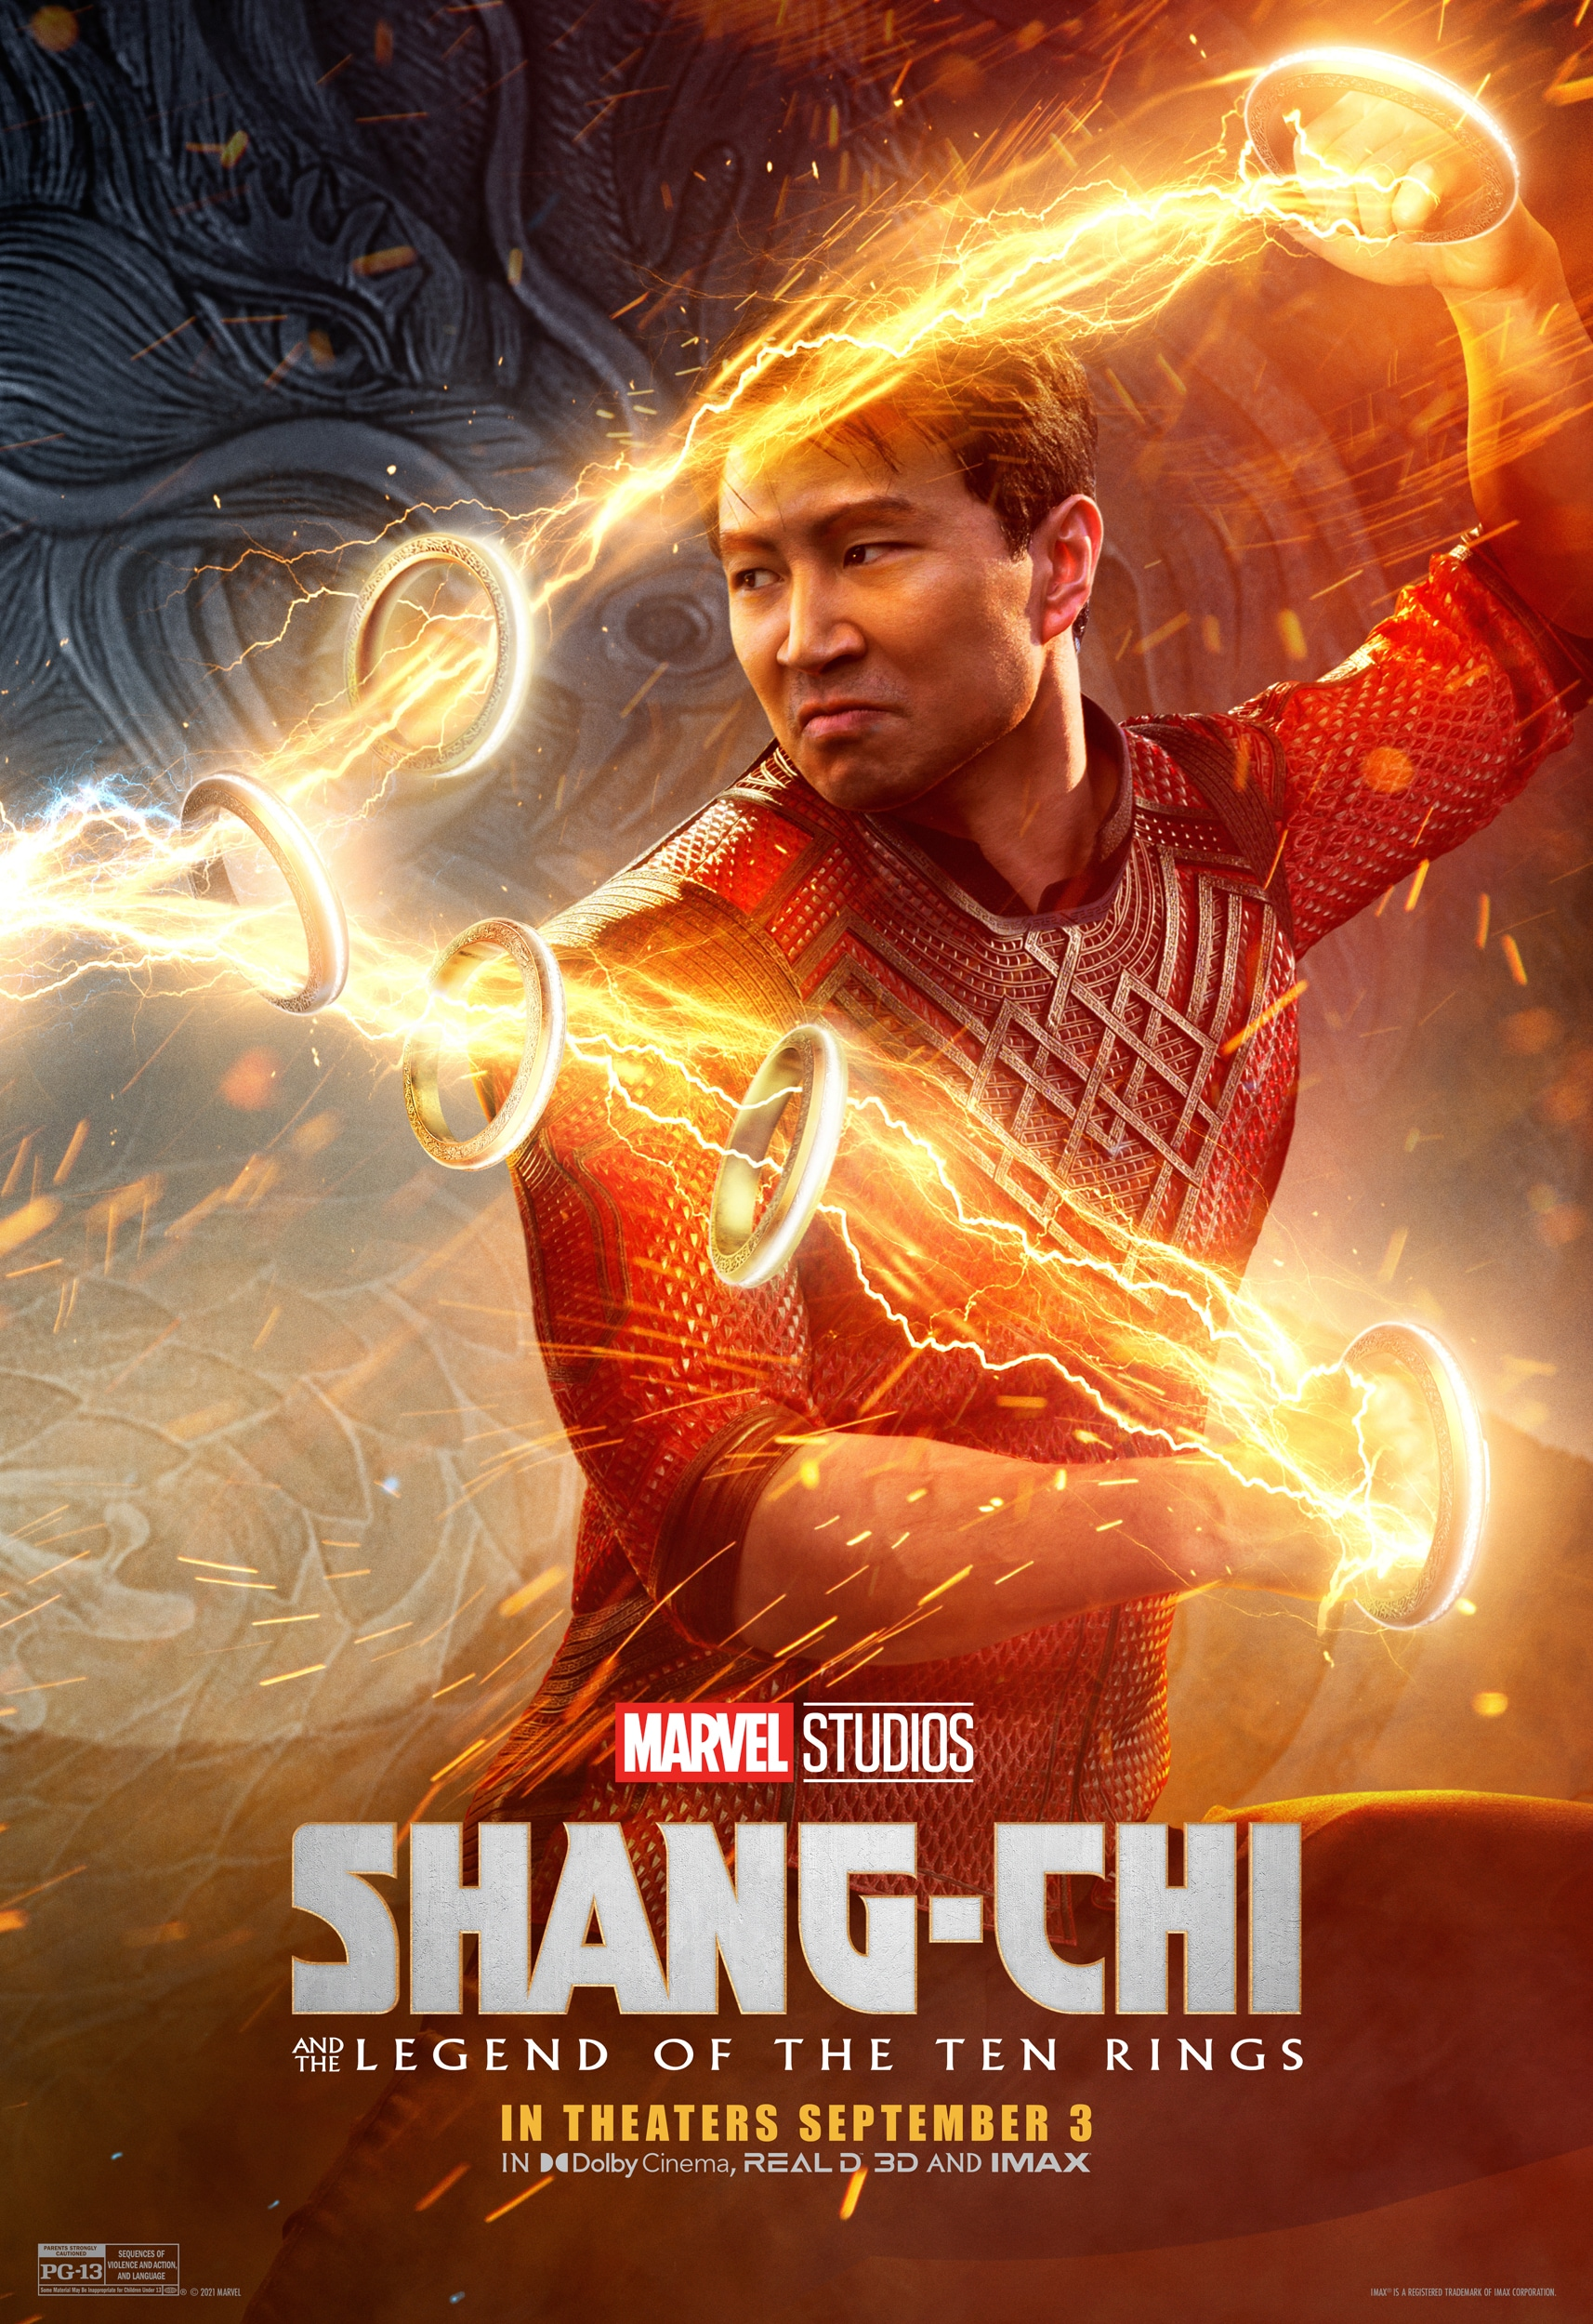 Official poster for Marvel Studios' Shang-Chi and the Legend of the Ten Rings